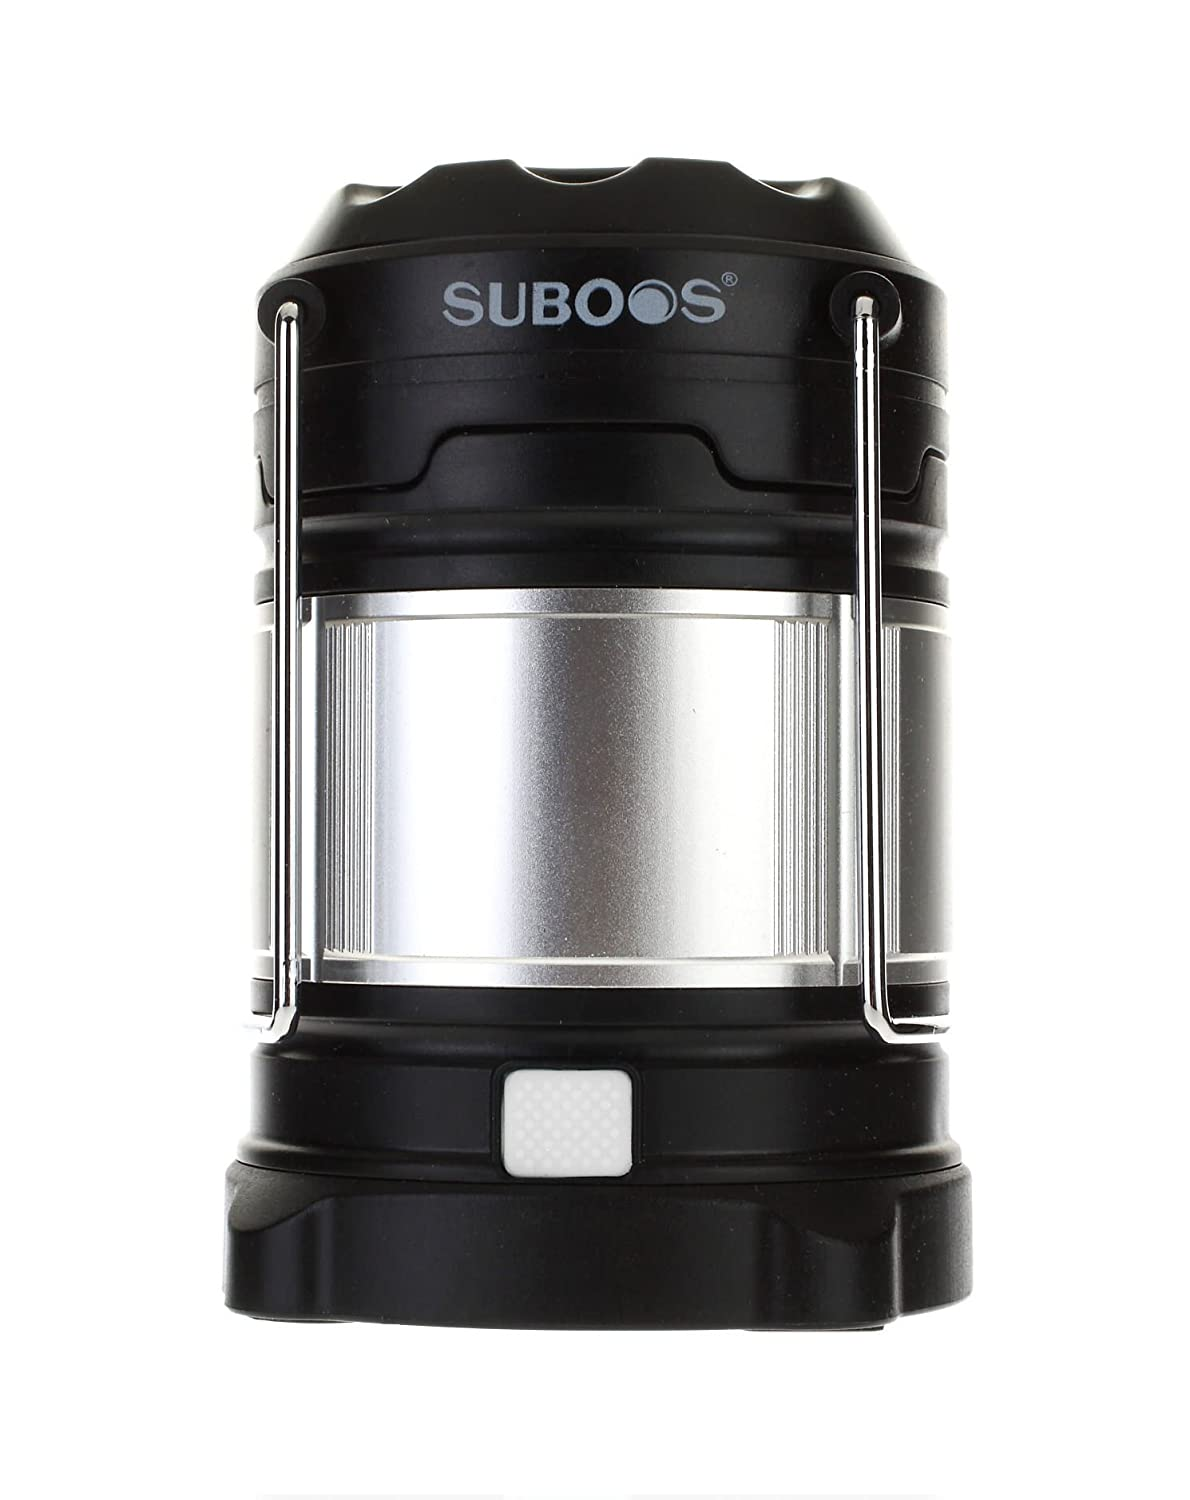 SUBOOS Ultimate Rechargeable LED Lantern and 5200mah USB Power Bank - The Most Professional LED Lantern- Great For: Camping, Hiking, Workshop, Auto Emergencies - 2 Battery Options(All Batteries Included)